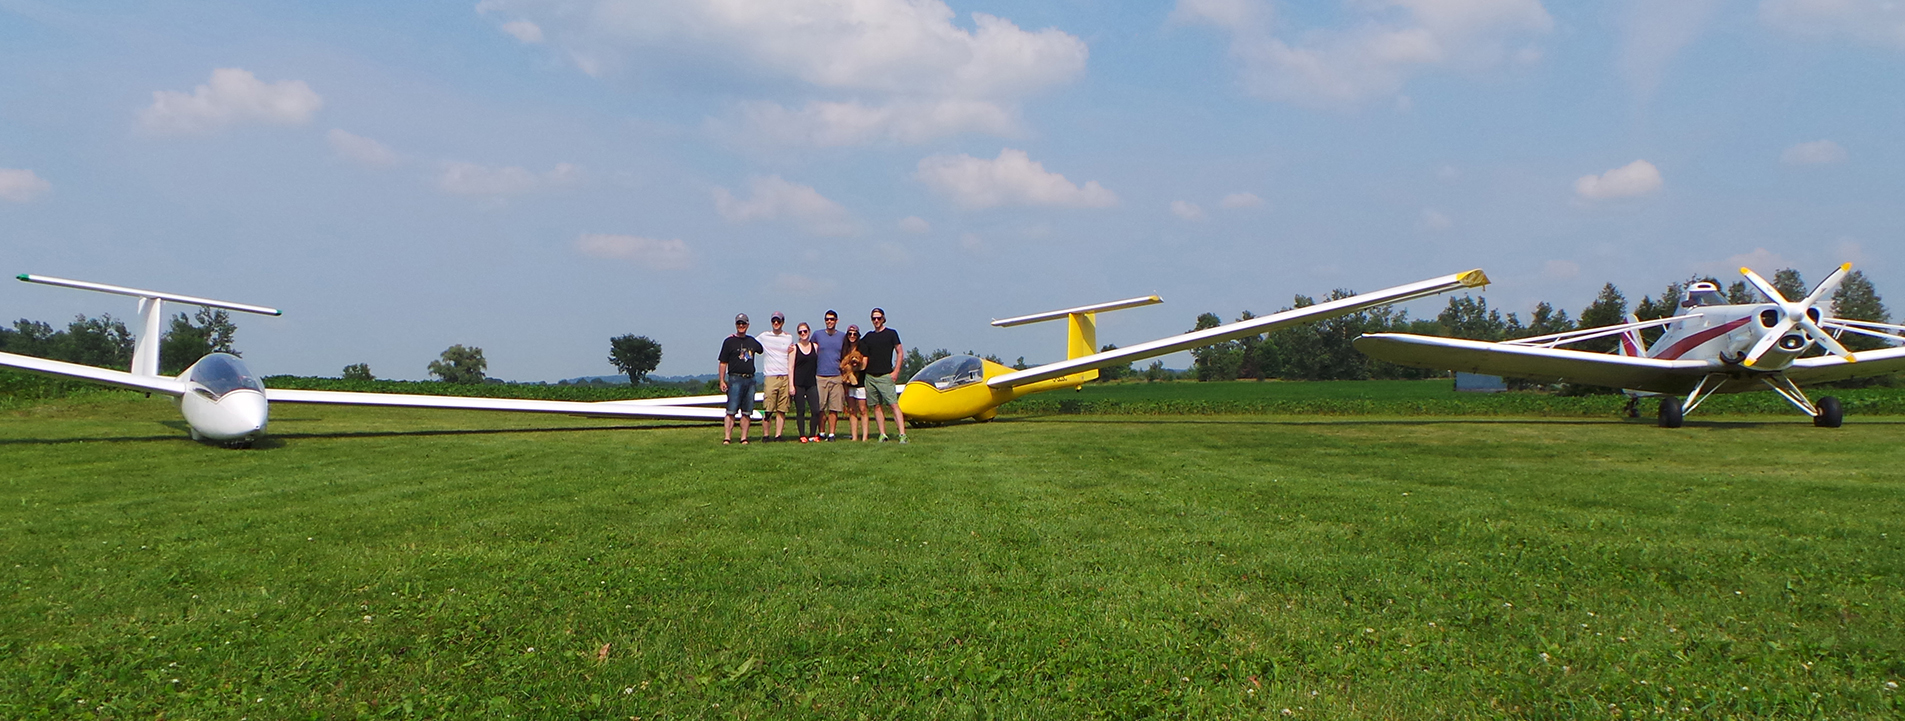 Come Fly with Us - Great Lakes Gliding Club - Closest to Toronto